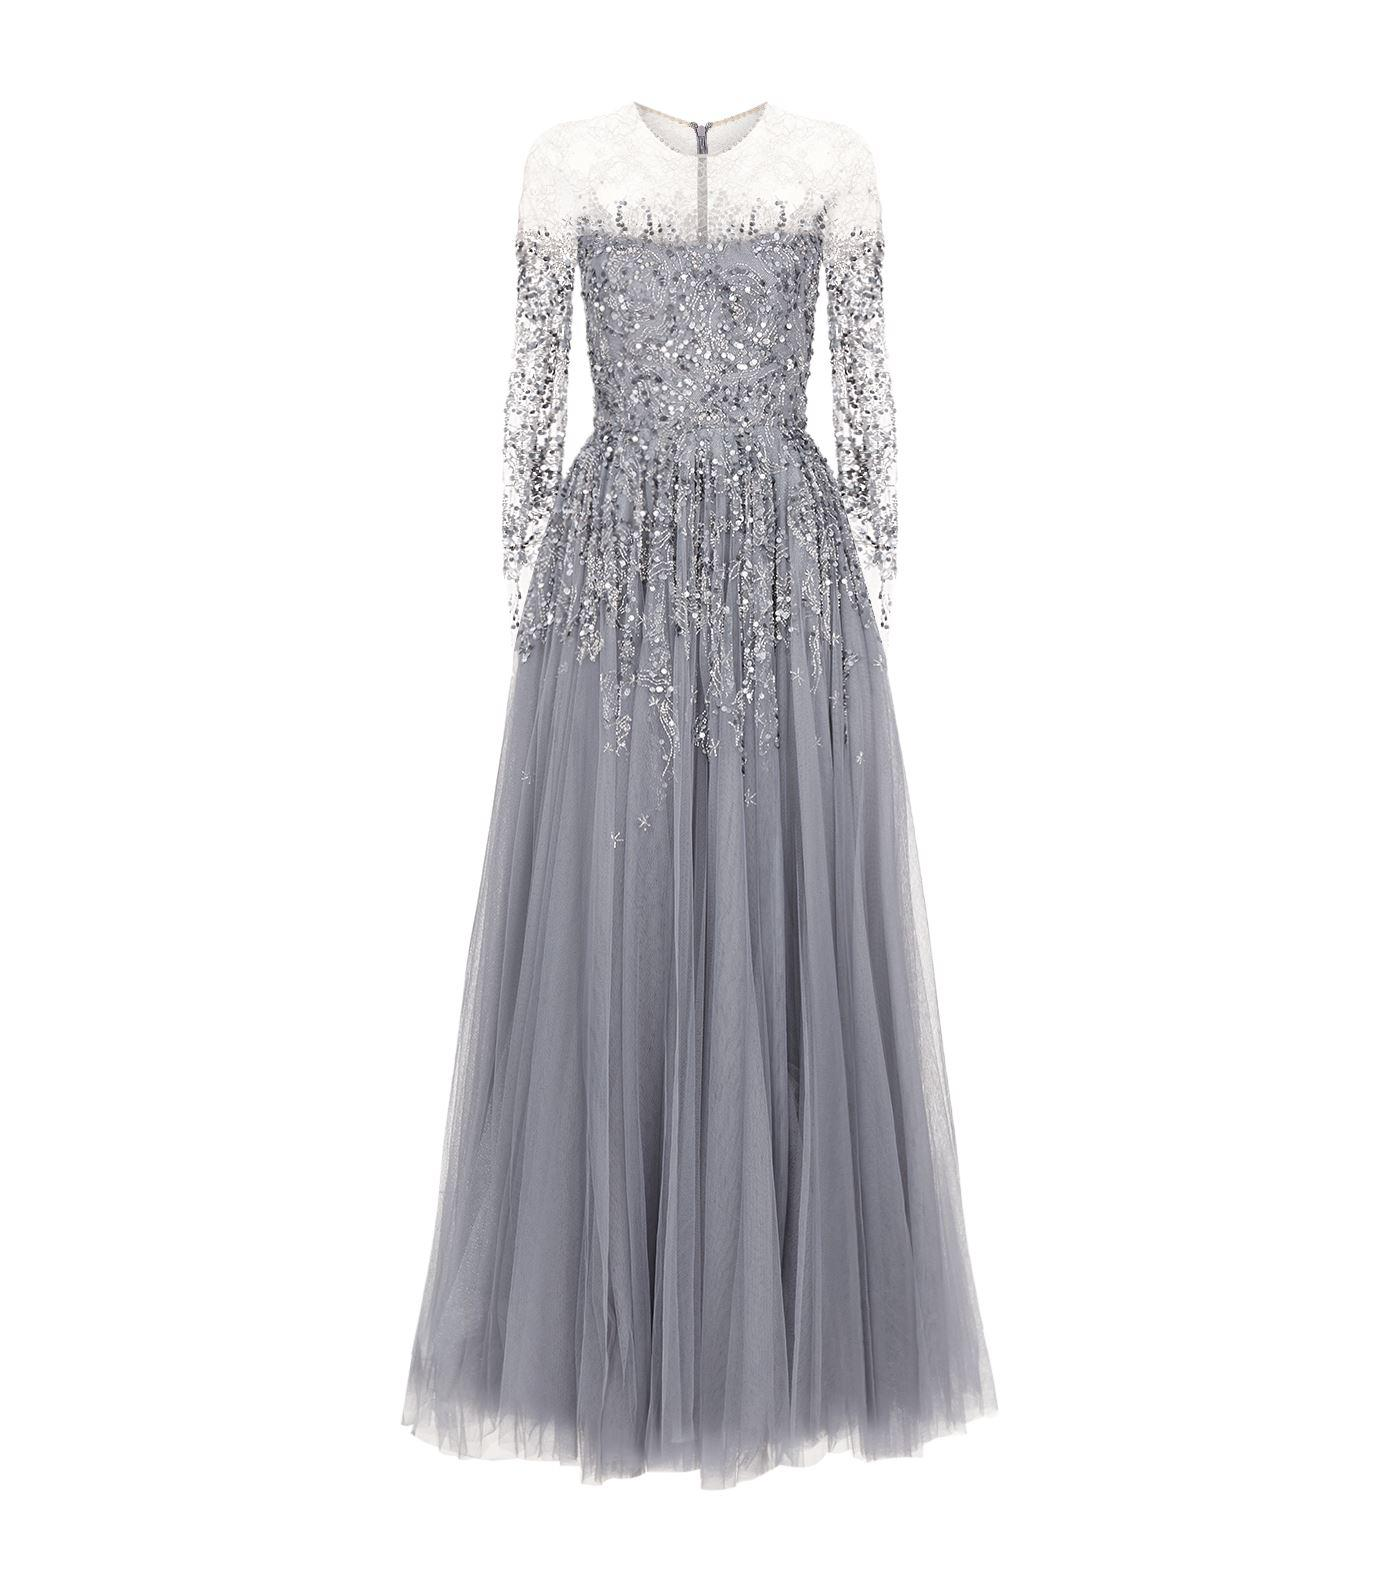 Lyst - Jenny Packham Sequin Tulle Gown in Purple